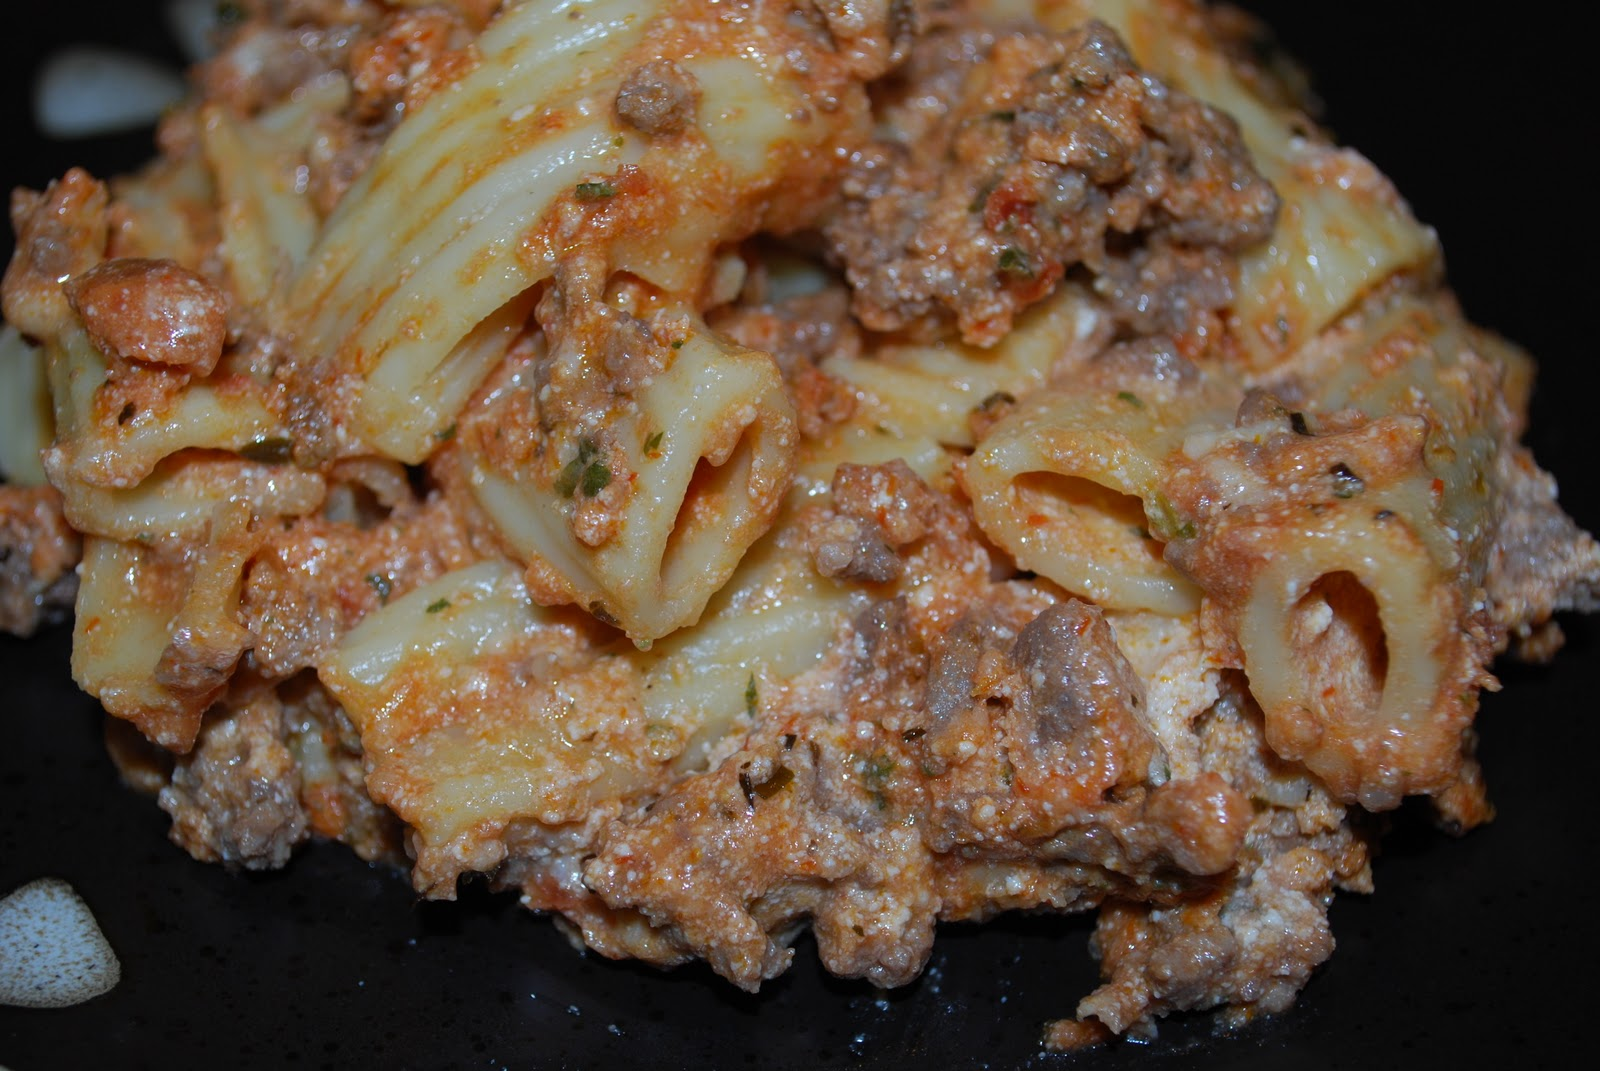 Baked Rigatoni with Meat Sauce - Carrie's Experimental Kitchen